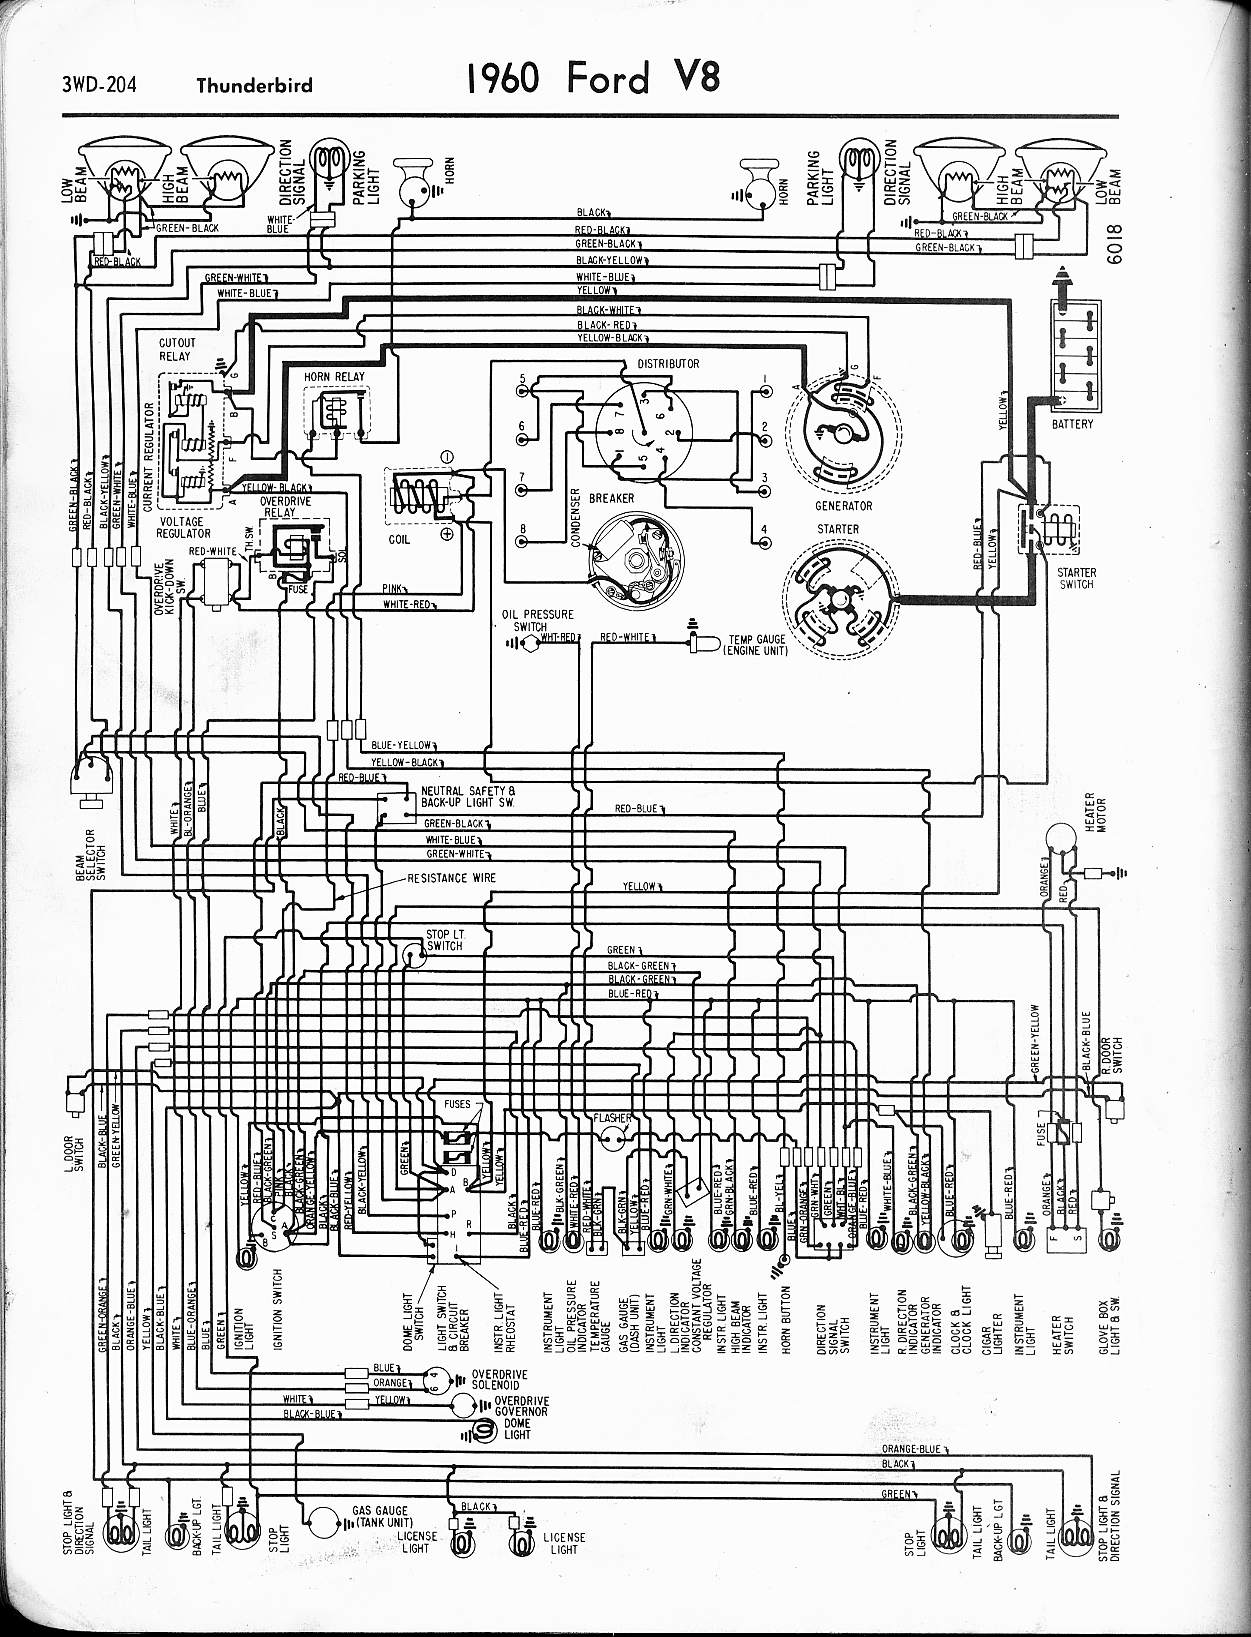 57-65 Ford Wiring Diagrams on 1970 ford ignition coil, 1970 ford charging system diagram, 1970 ford ignition system,